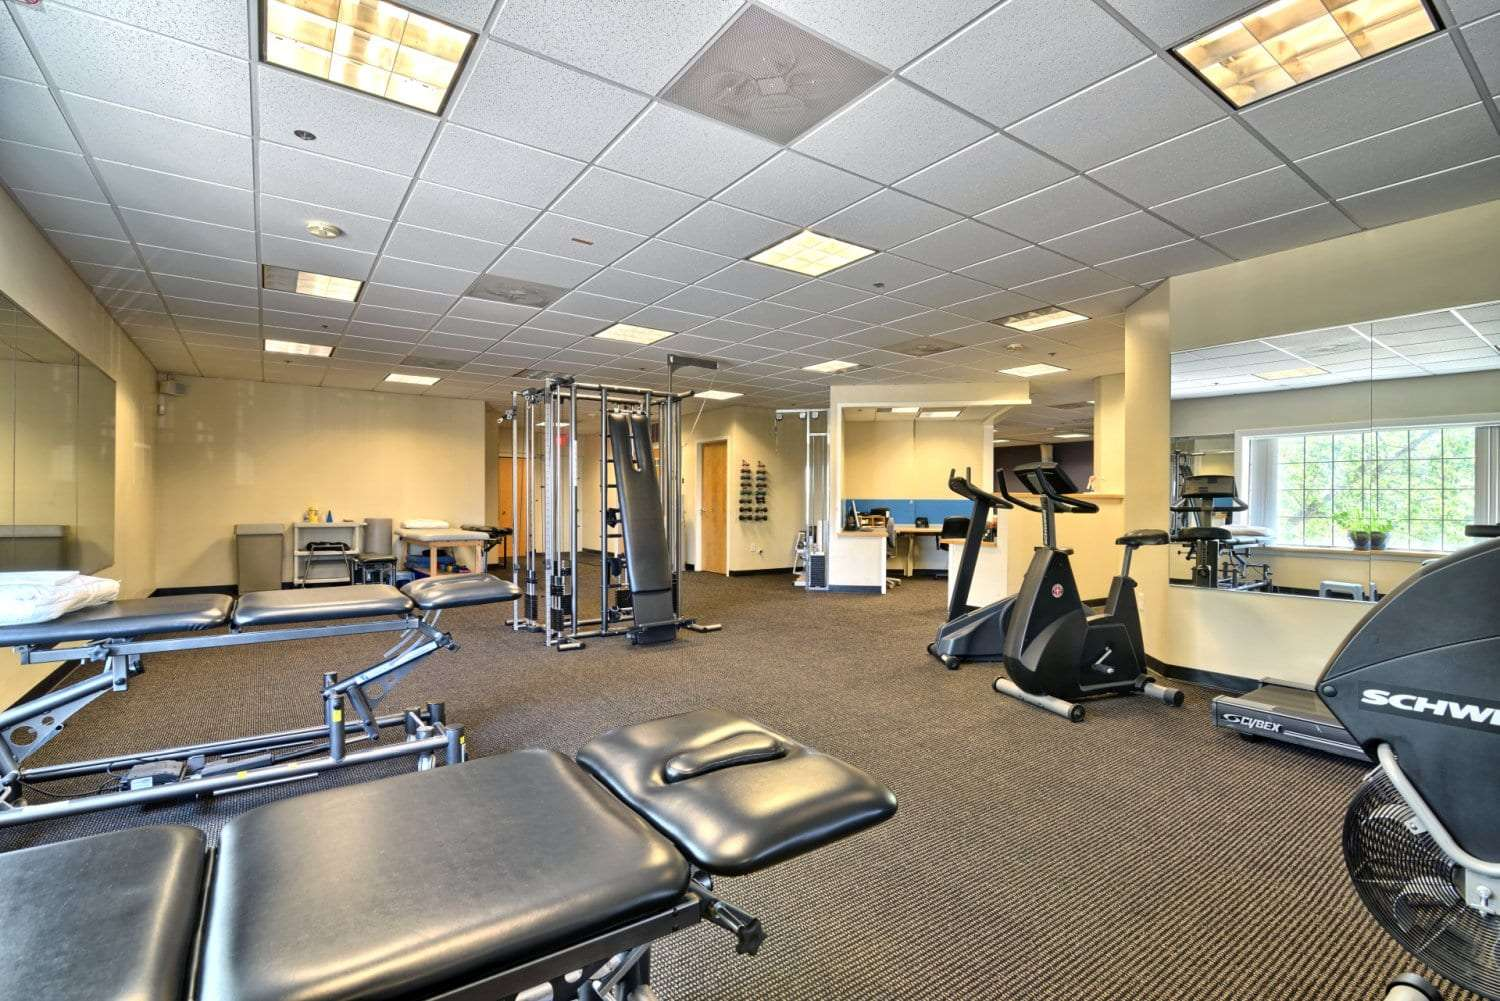 An image of various equipment used for physical therapy at our clinic in Salem, Massachusetts.